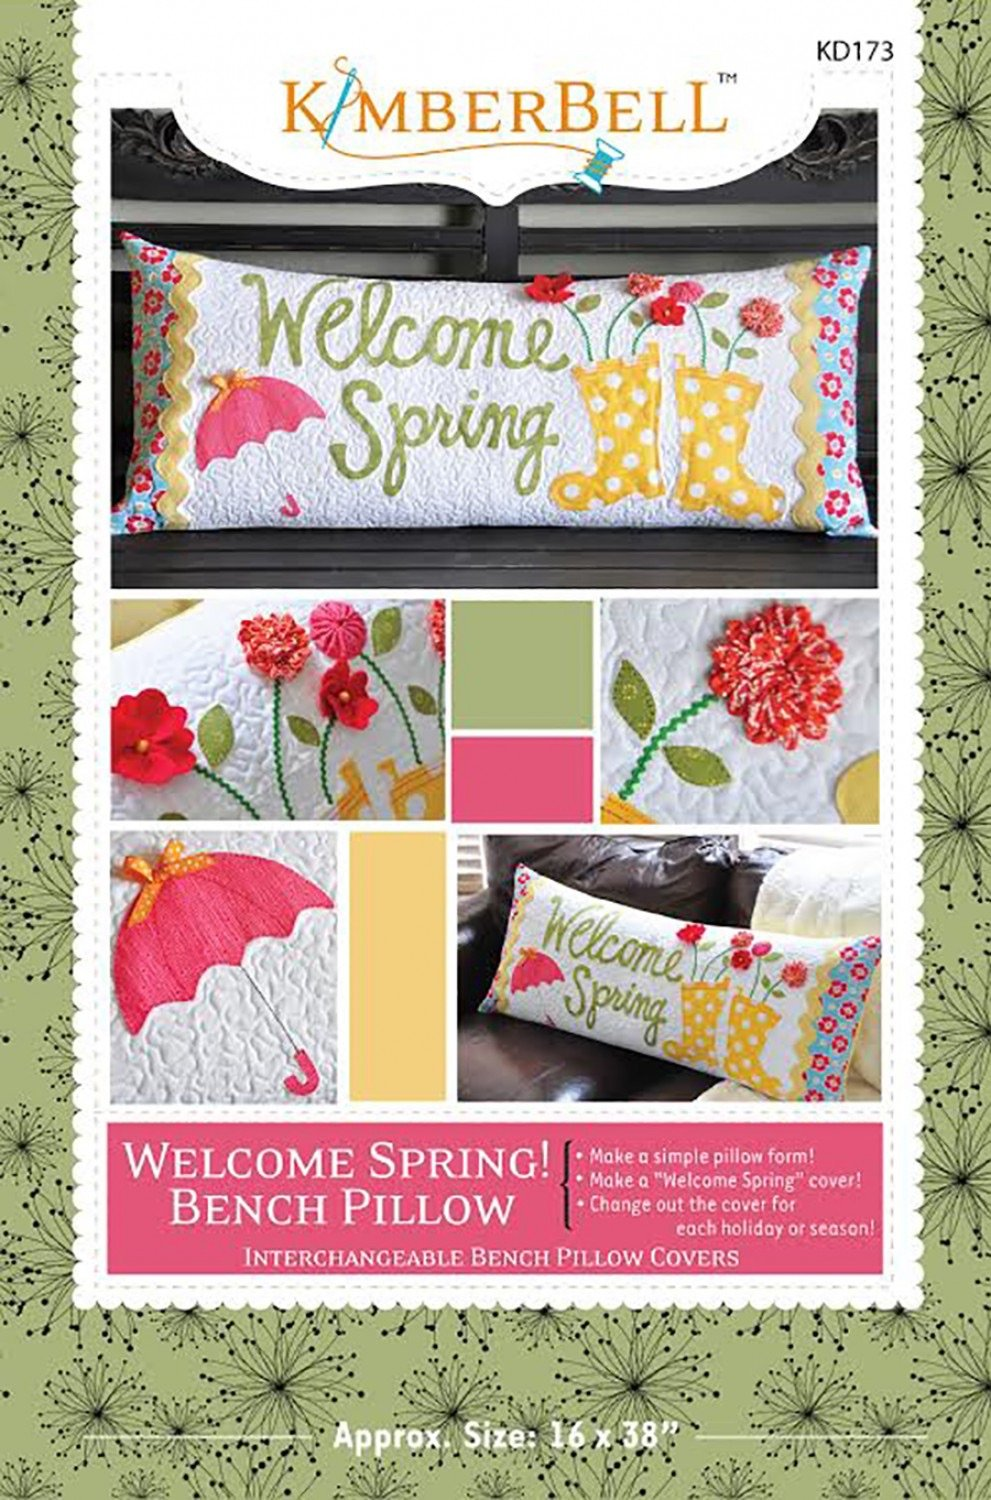 Welcome Spring! Bench Pillow by Kimberbell